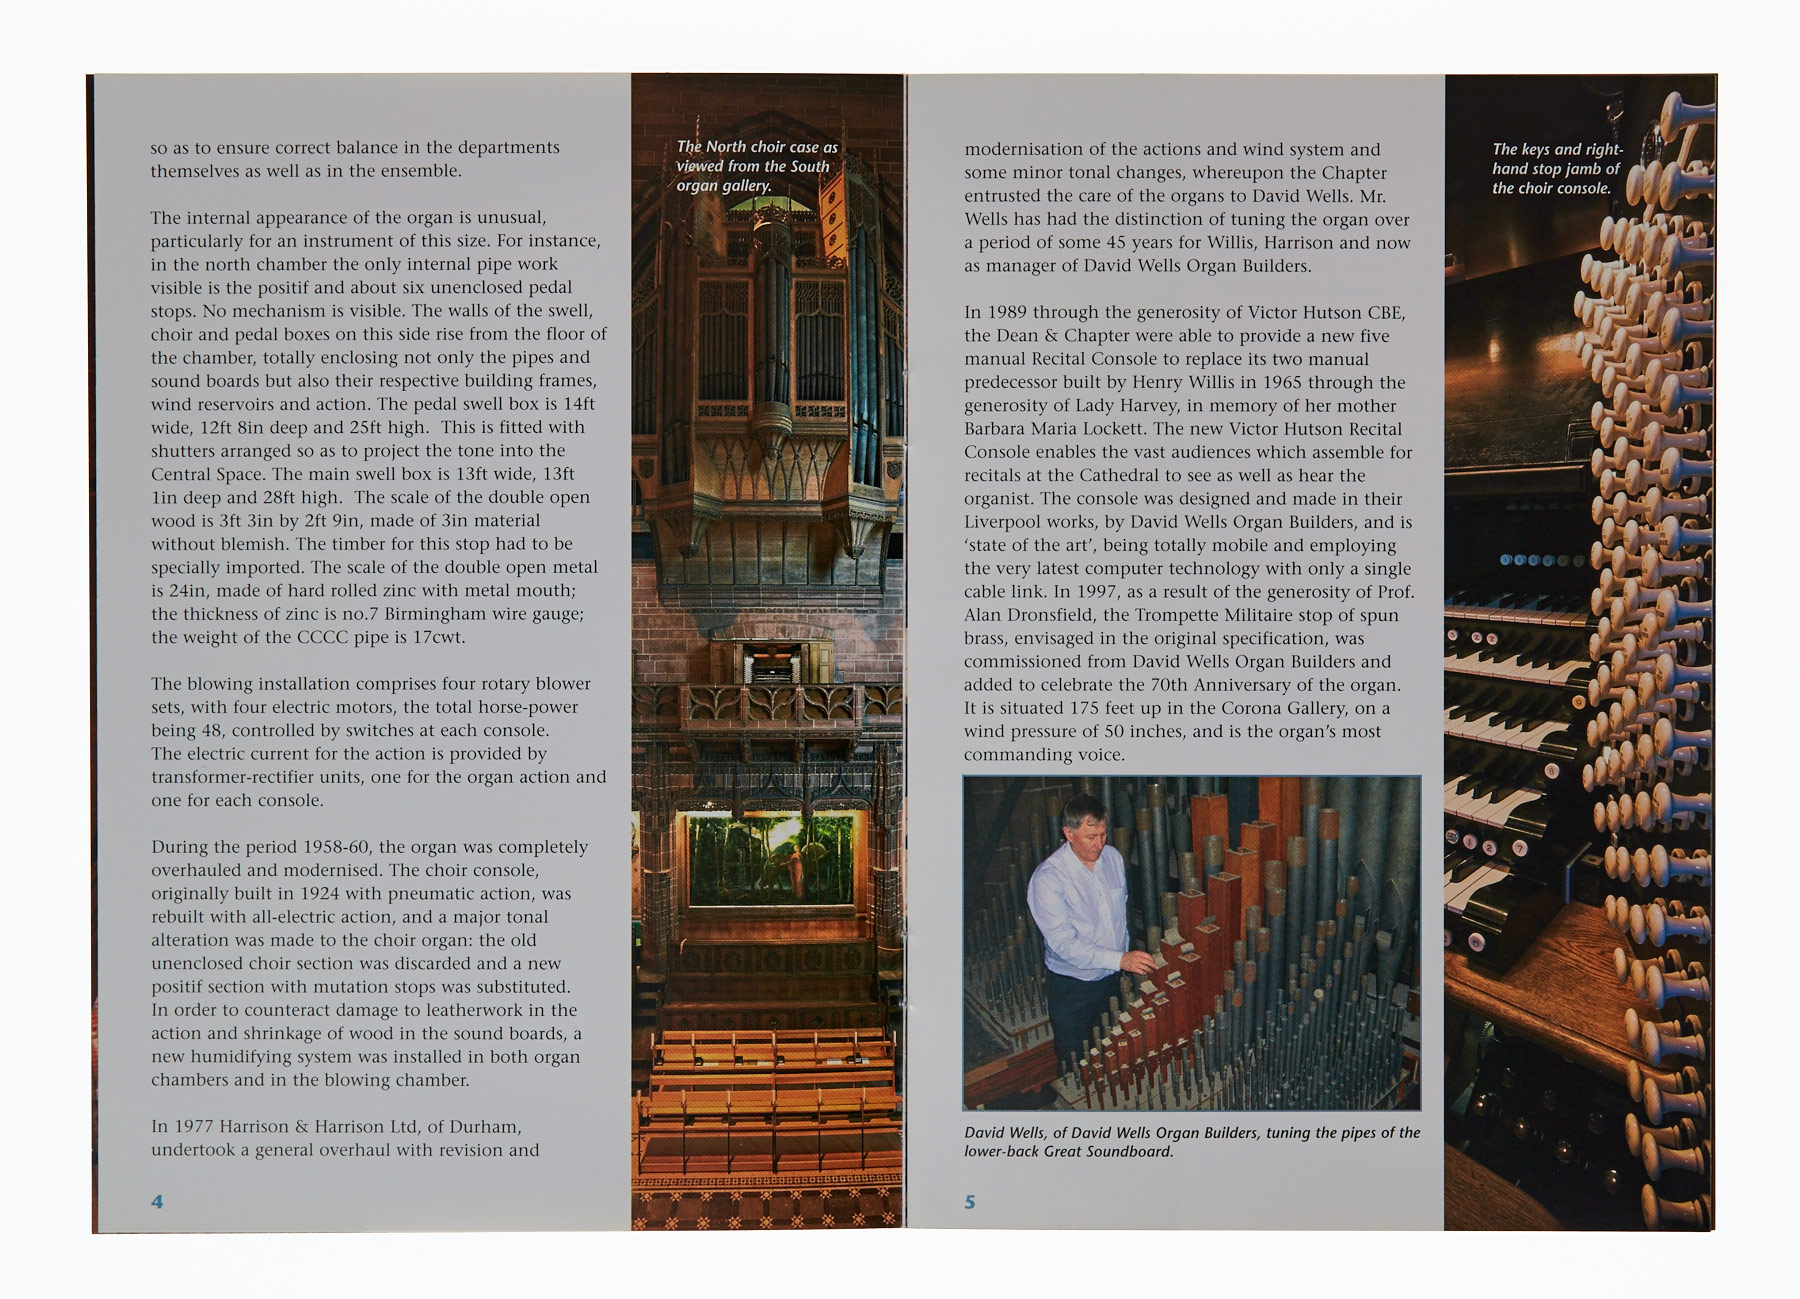 liverpool-cathedral-organ-03.jpg